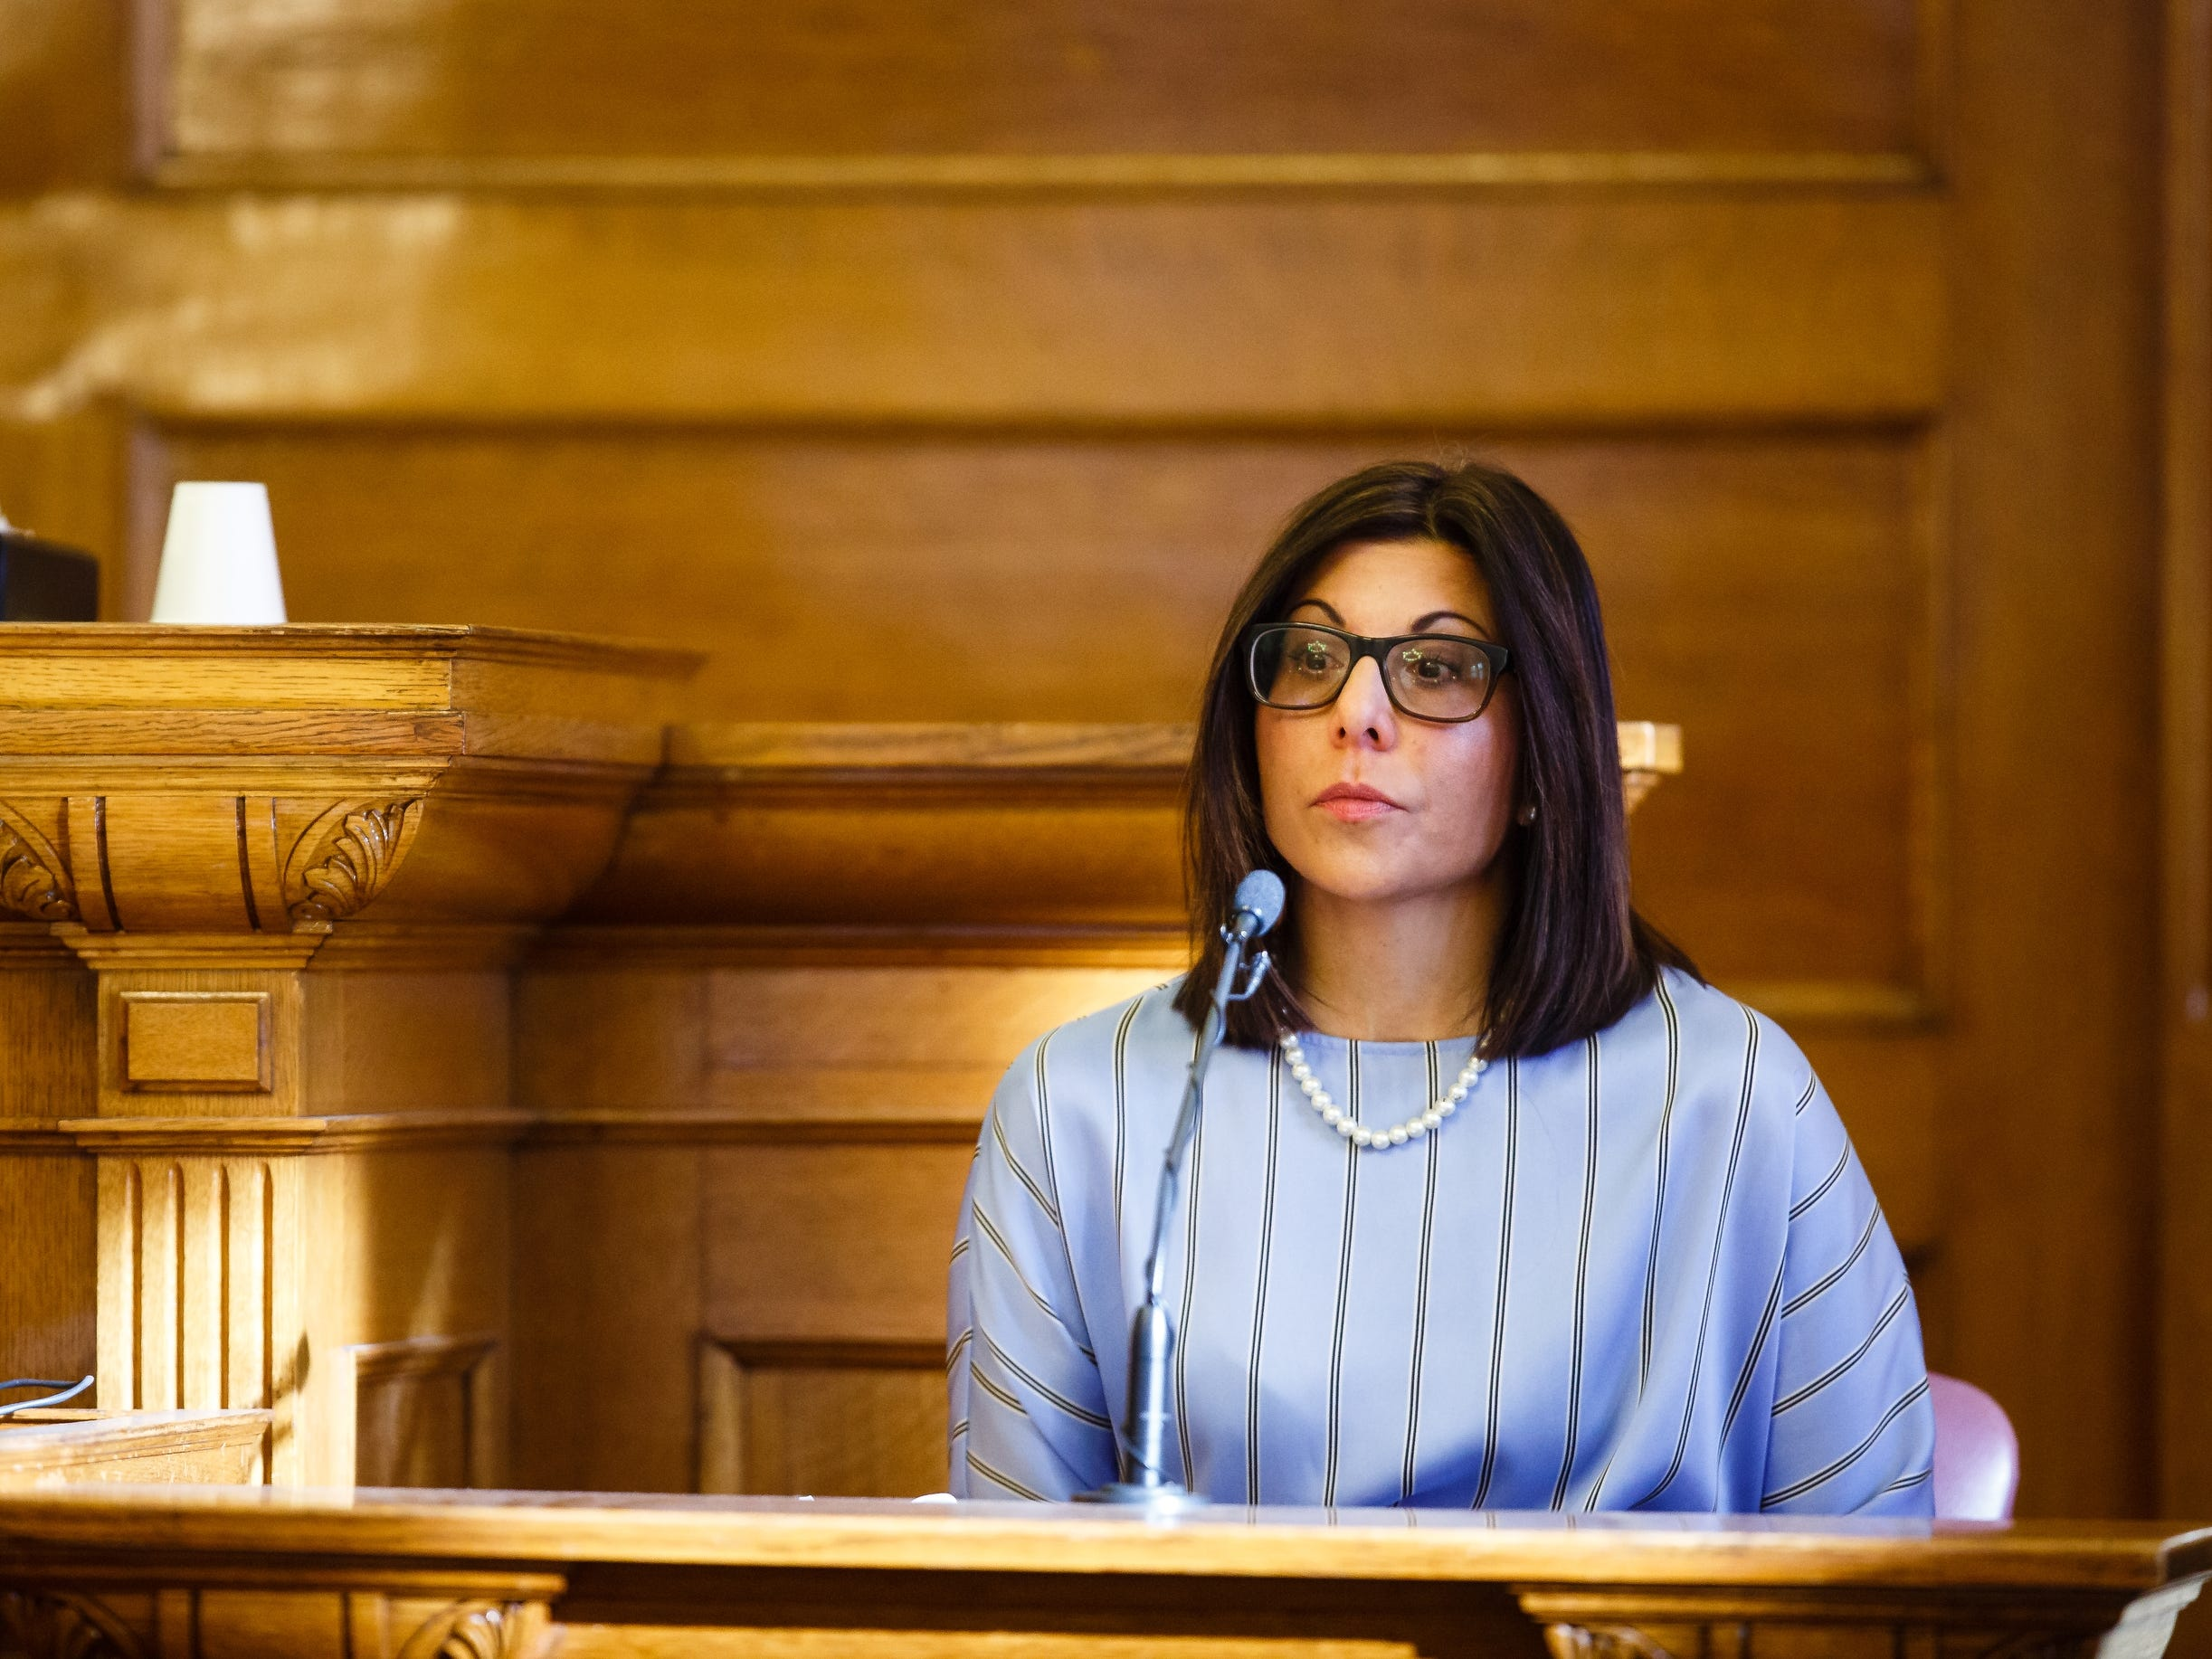 Gina Battani testifies during the criminal marital rape trial of her ex-husband Troy Griffin at the Dallas County Courthouse on Tuesday, Oct. 23, 2018, in Adel. The Dallas County jury found him not guilty on all counts.